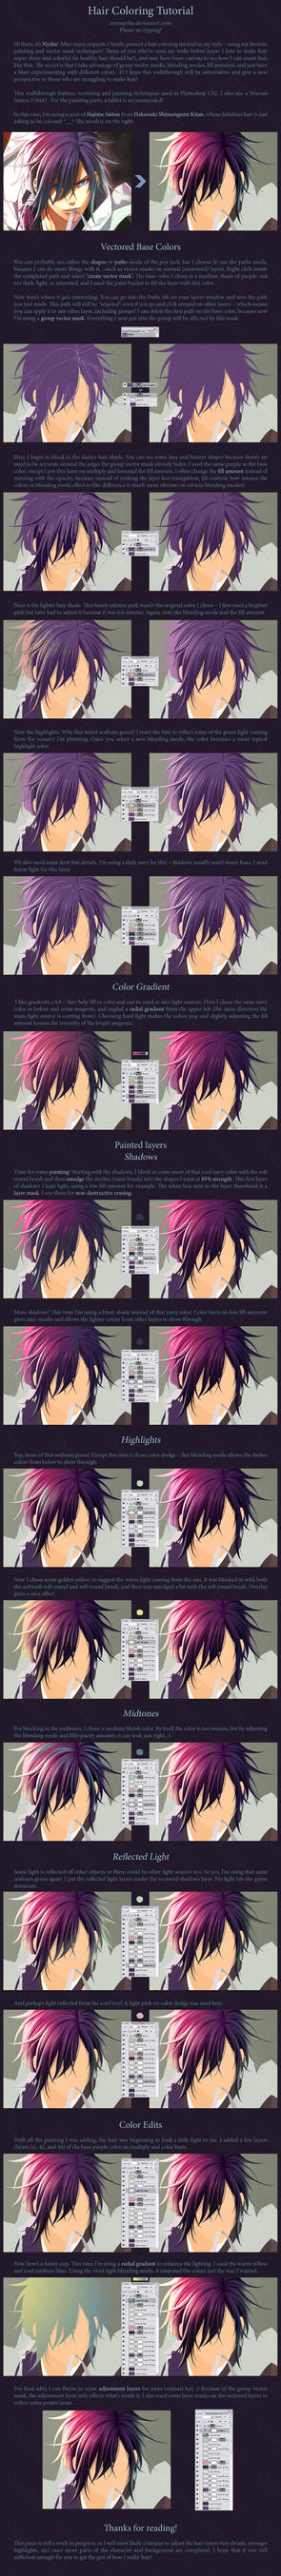 Hair Coloring Tutorial by MissNysha